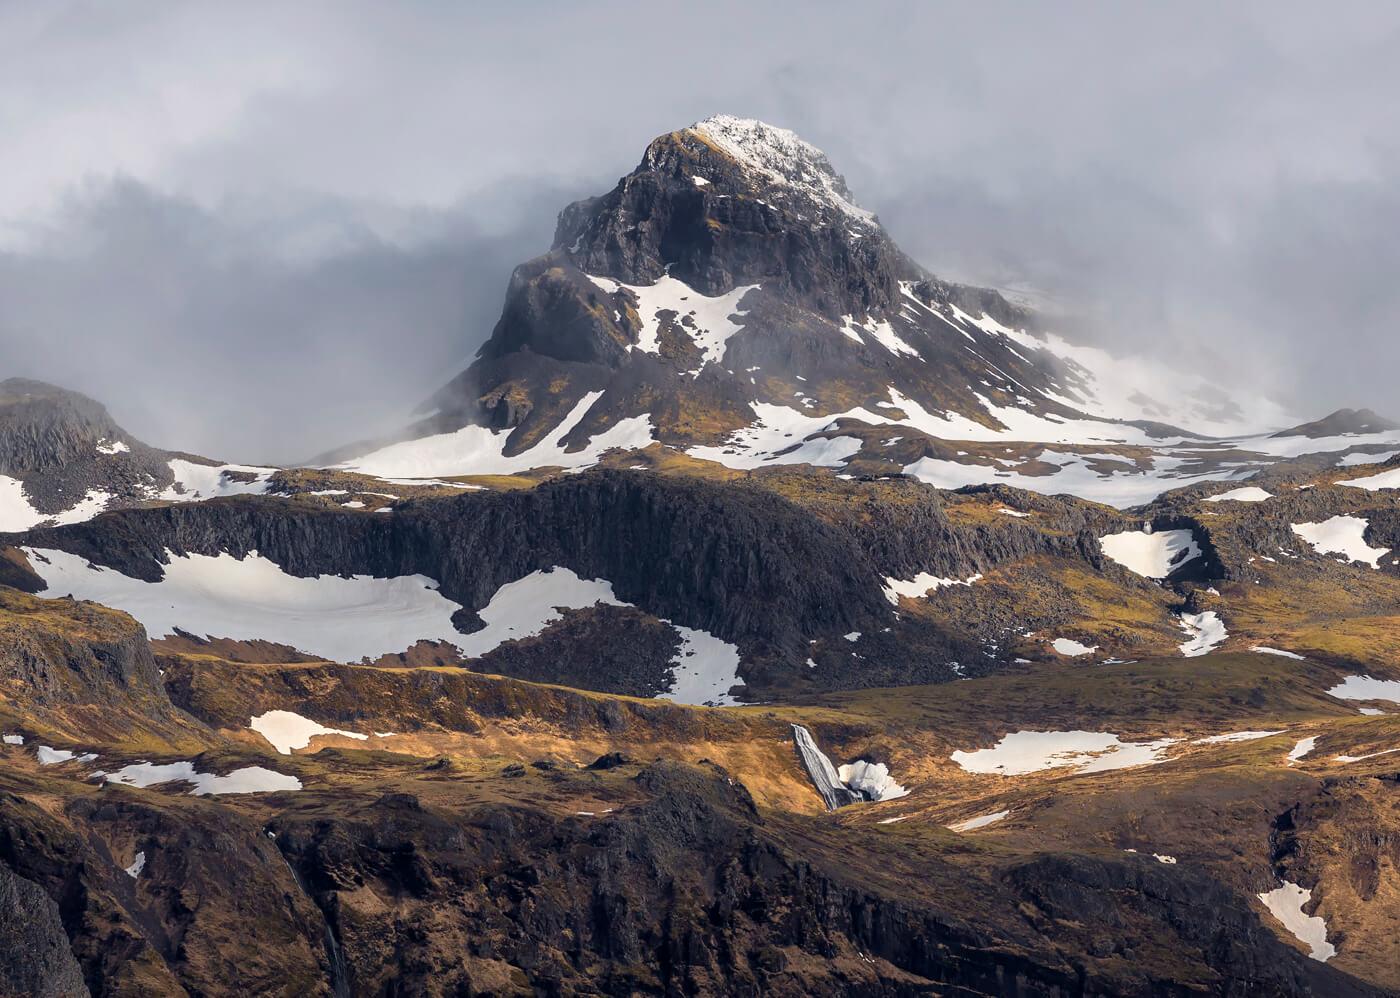 Snow Capped Mountain, Snaefellsnes Peninsula, Iceland